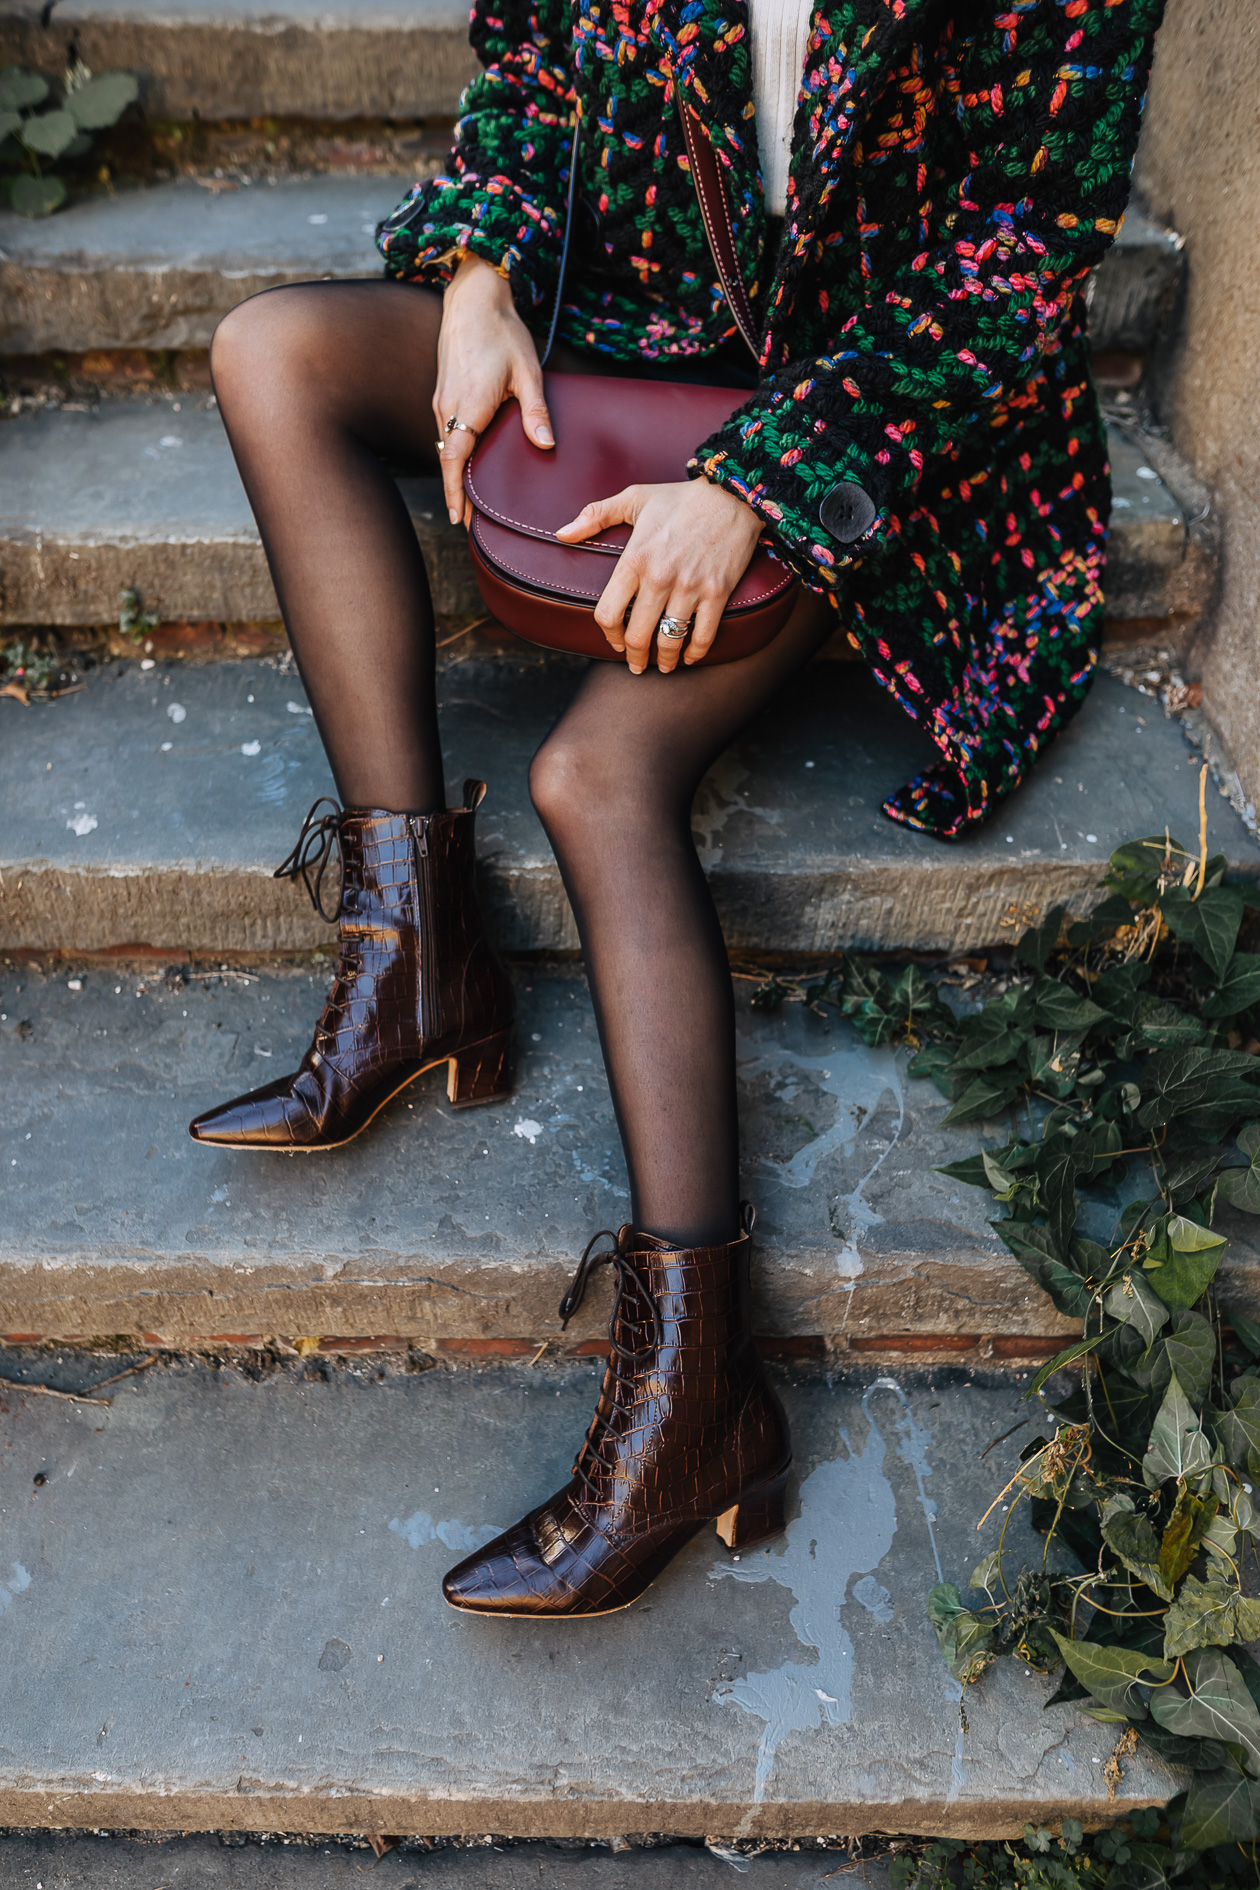 pointy-toe lace-up boots